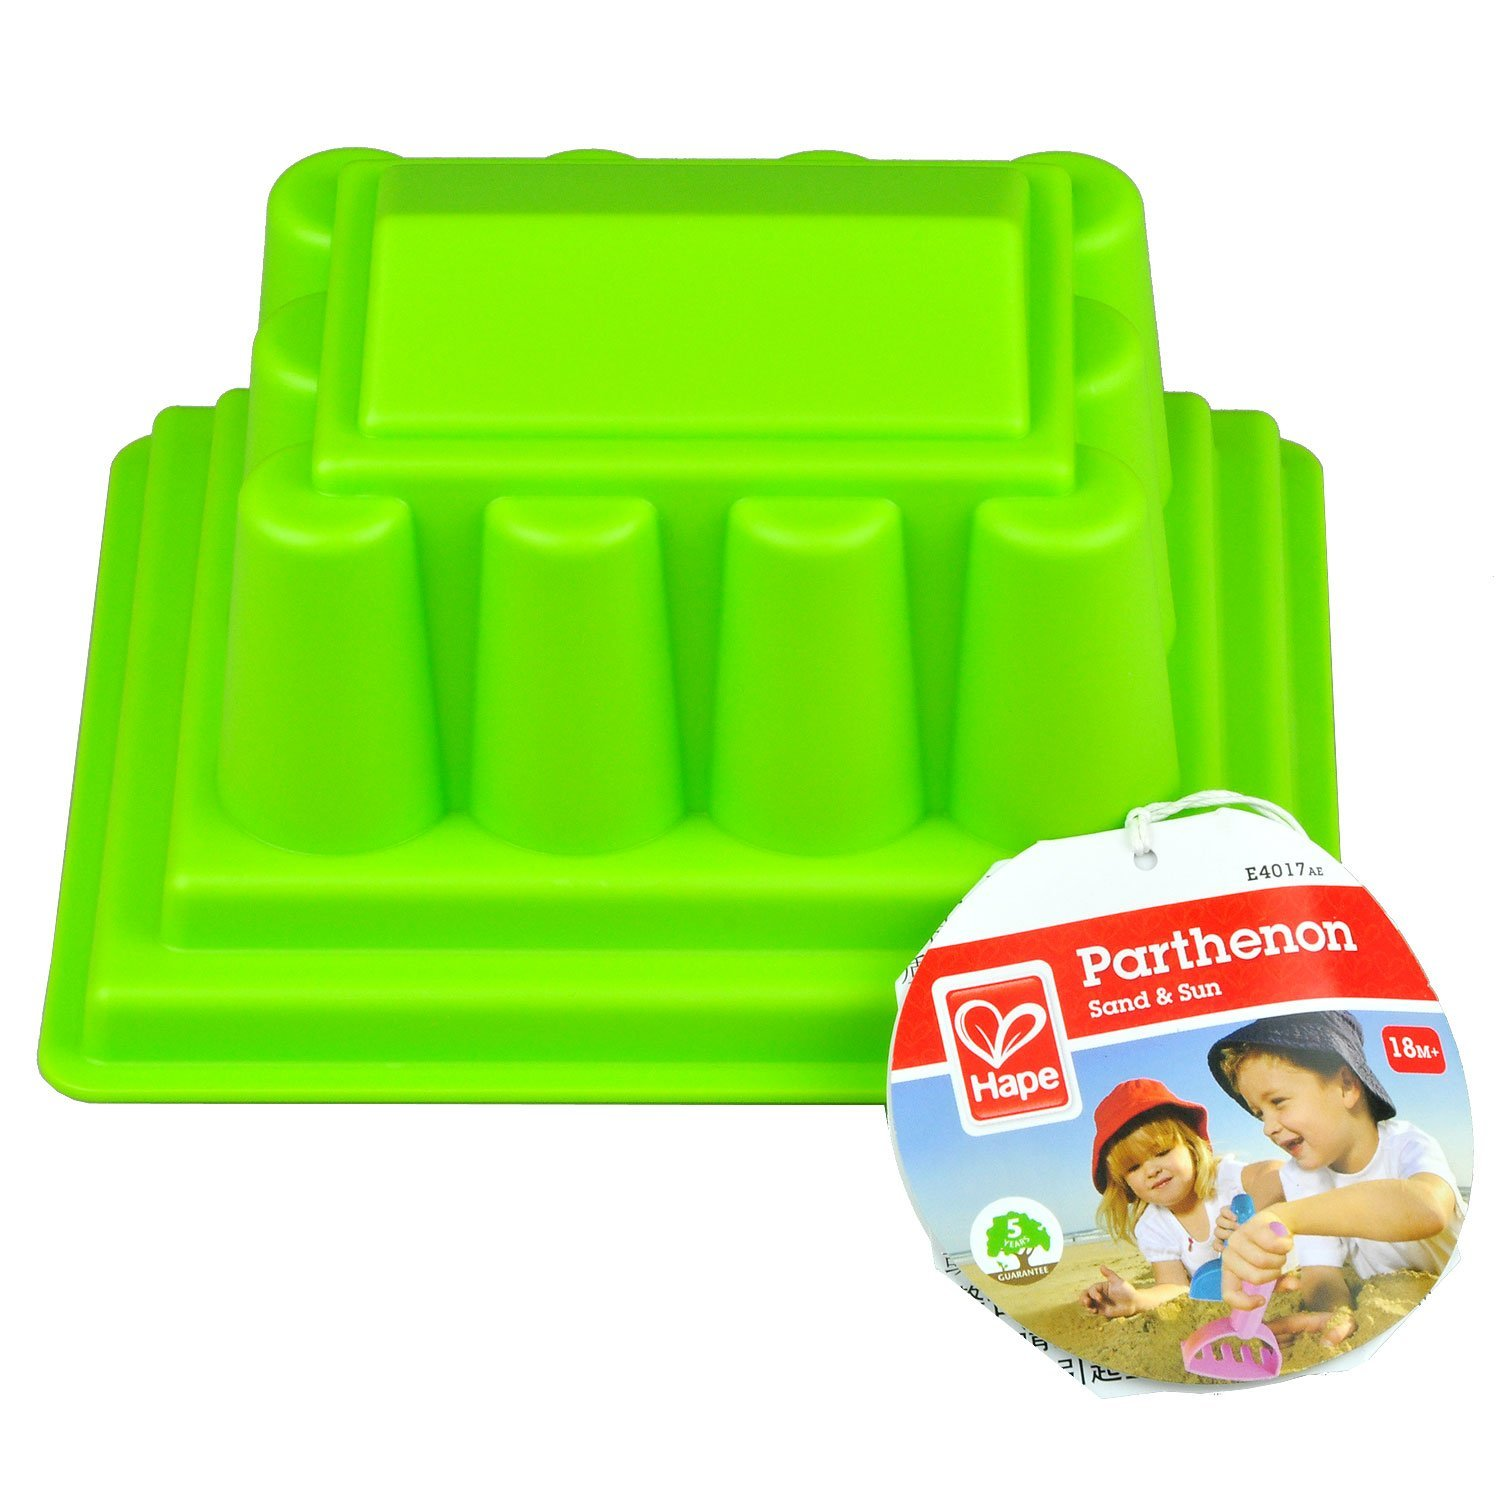 Hape Toys Parthenon Sand Mold | Citrus Lane May Box: Look at the Loot